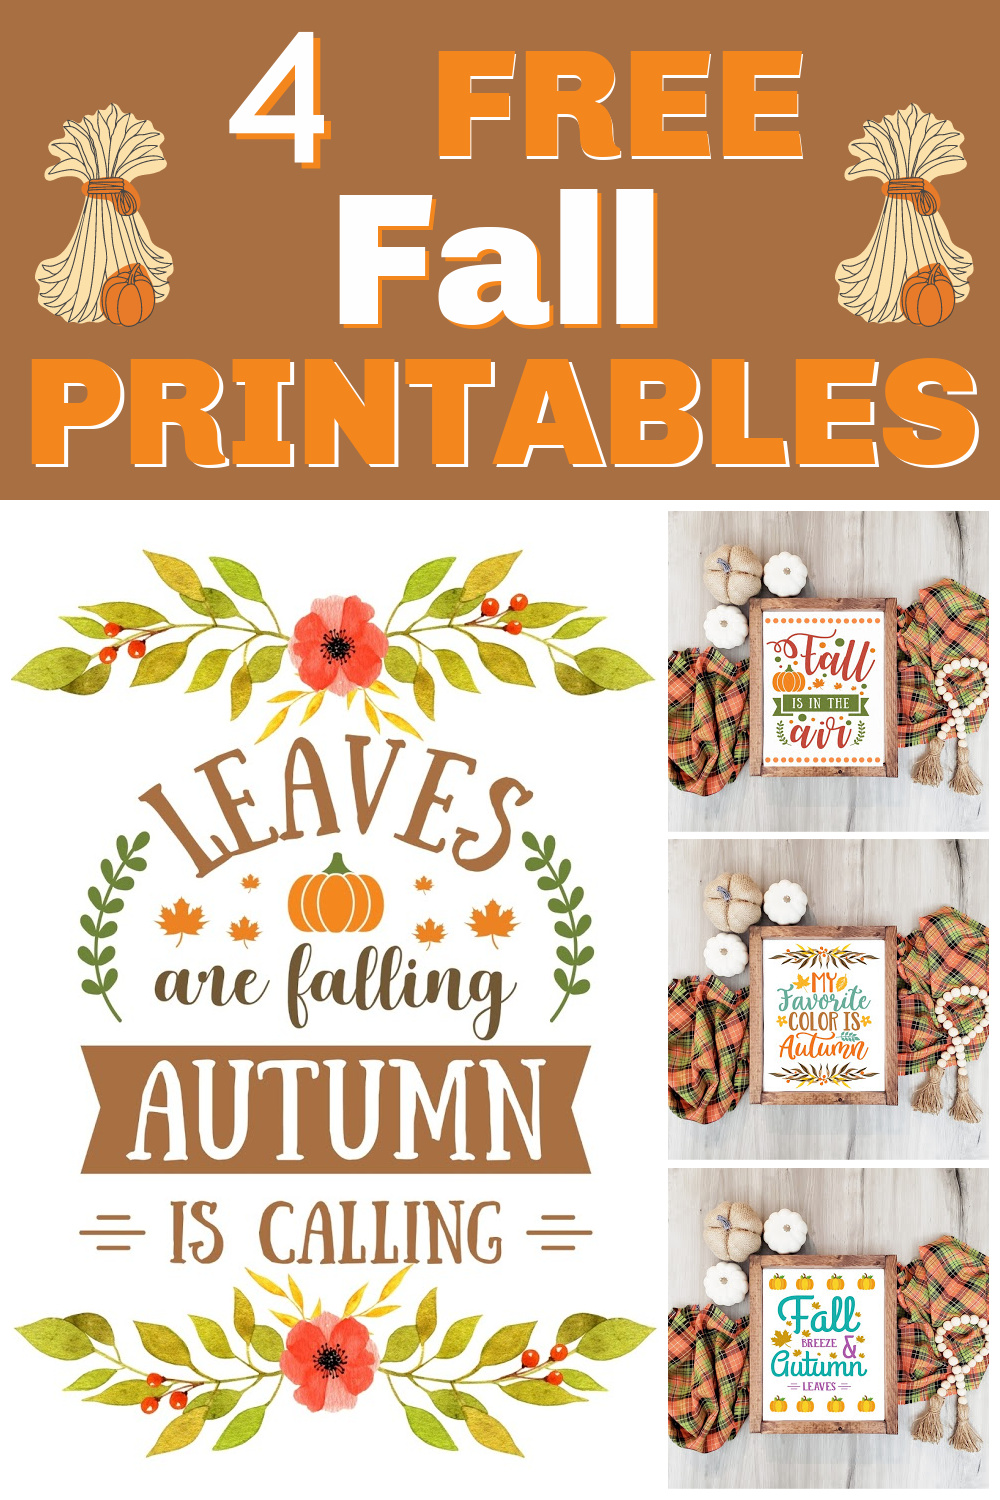 Free Fall Printables - Print these pretty fall printables out and pop them in a frame for instant fall decor.  They also look great hanging from a clipboard, tacked on a bulletin board, or taped to an office wall.  #fallprintable #freefallprintable #freeprintable via @spaula